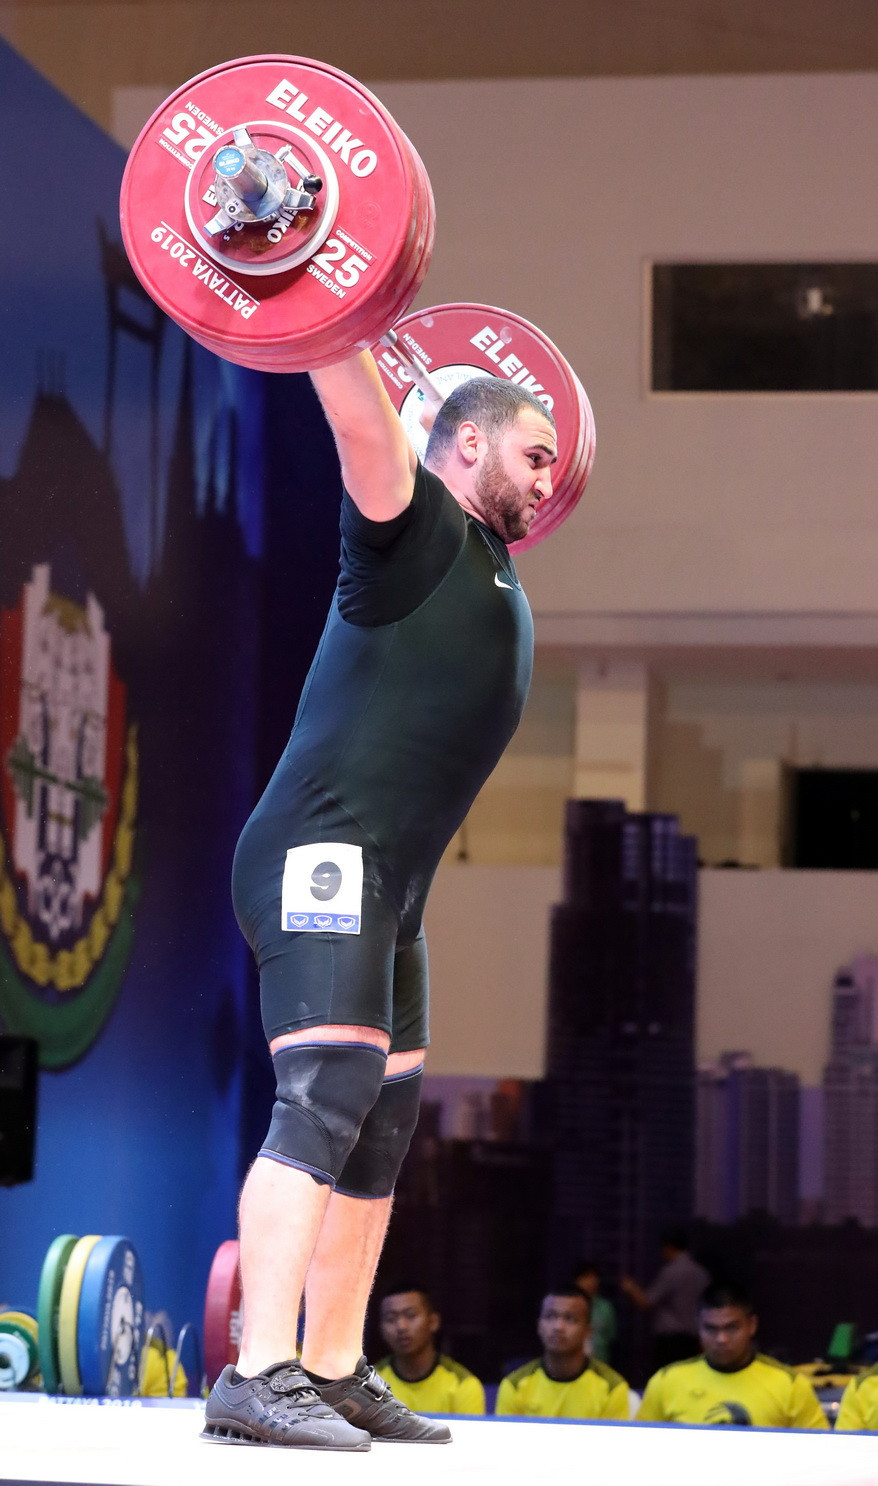 In doing so, the 22-year-old was the last of three lifters to break the snatch world record ©IWF